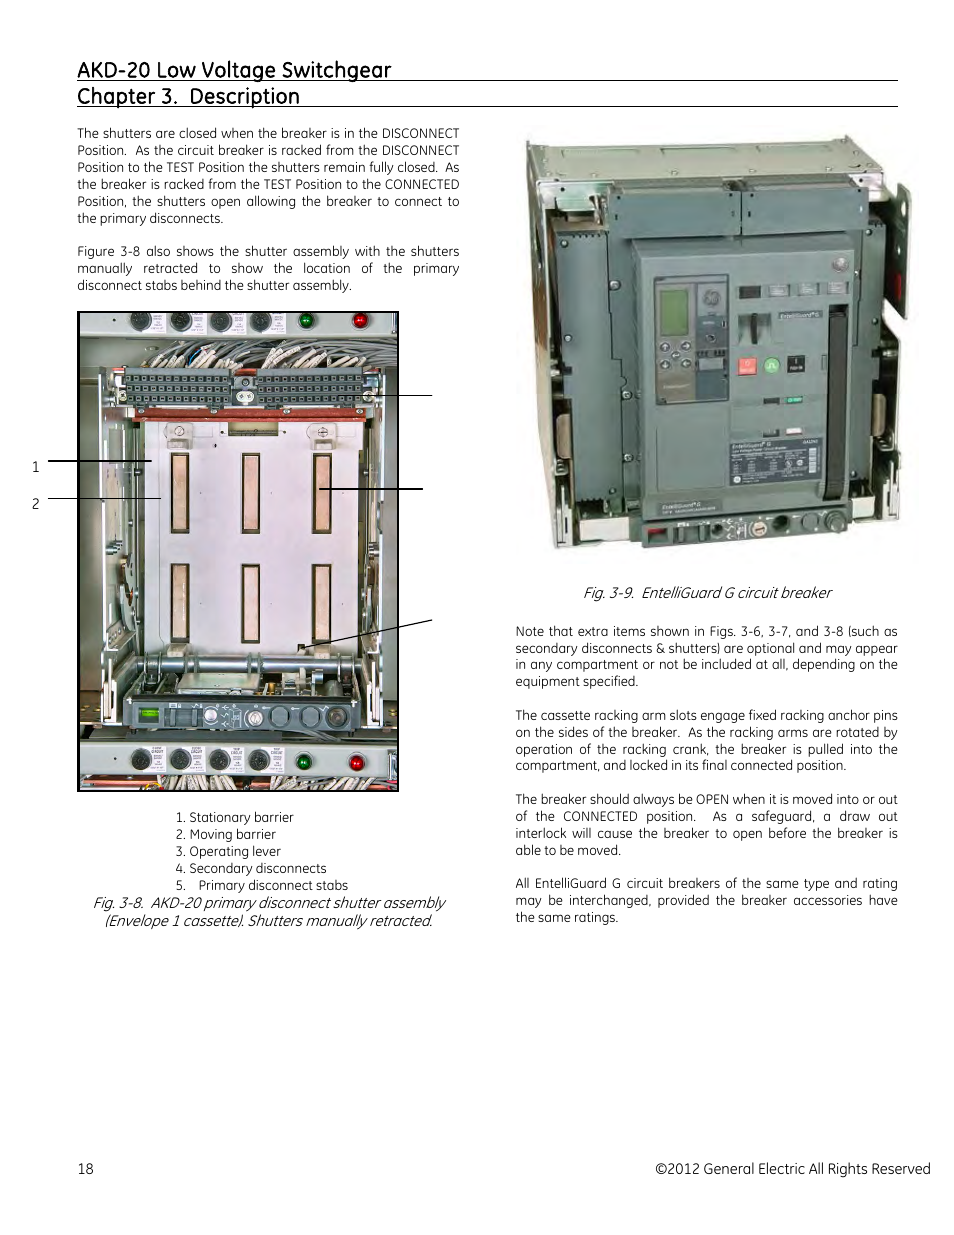 Ge Industrial Solutions Akd 20 Low Voltage Switchgear Manuel D Circuit Breakers In The Off Position Without Locking Out An Entire Dutilisation Page 18 69